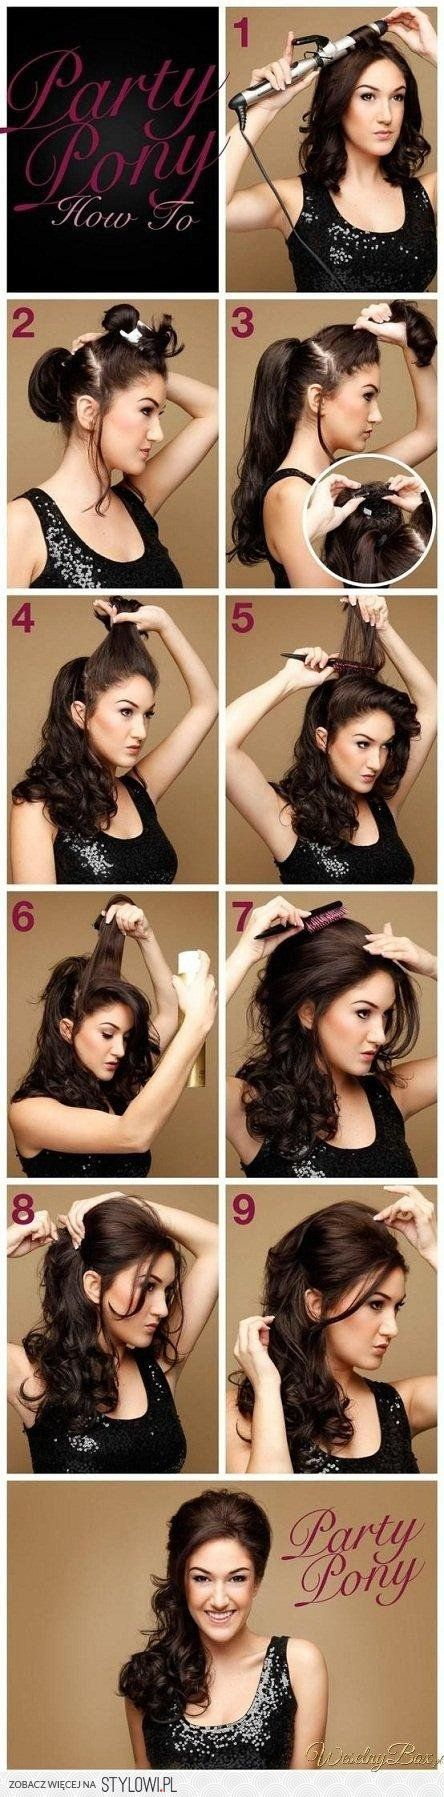 Step by step: Party Pony bouffant ponytail@jessicaw9900 , you are on hair duty the weekend we have our nerf gun war with @Margaret Martinez Smith. You should so do this to our hair!